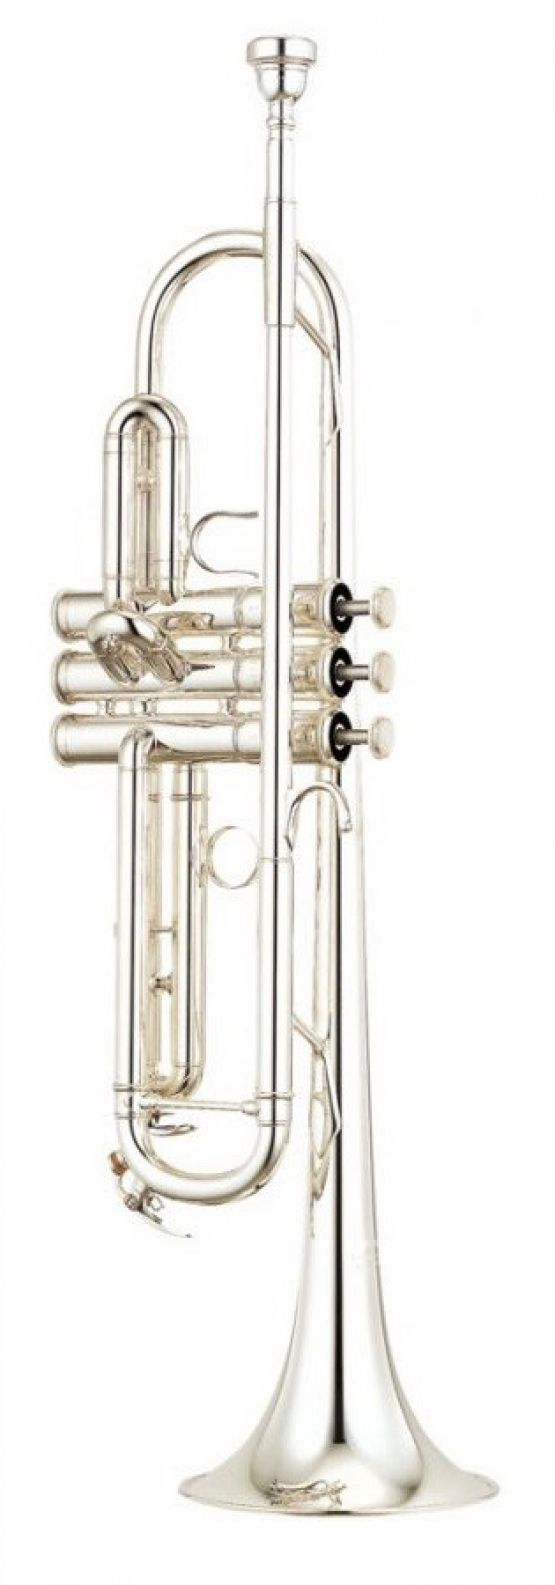 Yamaha YTR6335S Silver Plated Trumpet main image